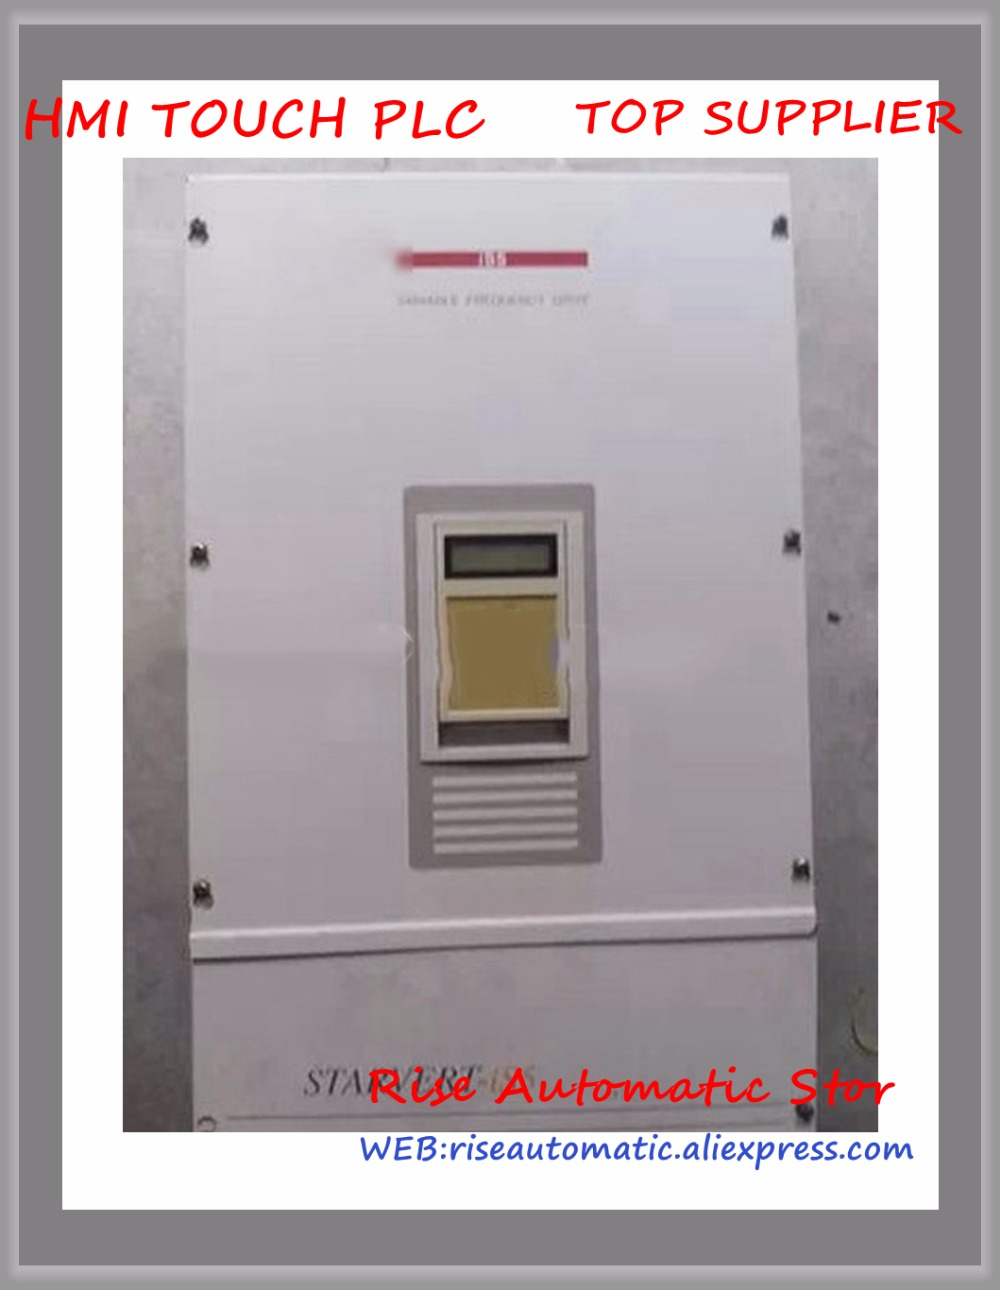 1.5KW 3 phase200V Inverter VFD frequenza AC drive SV015iS5-2N nuovo1.5KW 3 phase200V Inverter VFD frequenza AC drive SV015iS5-2N nuovo